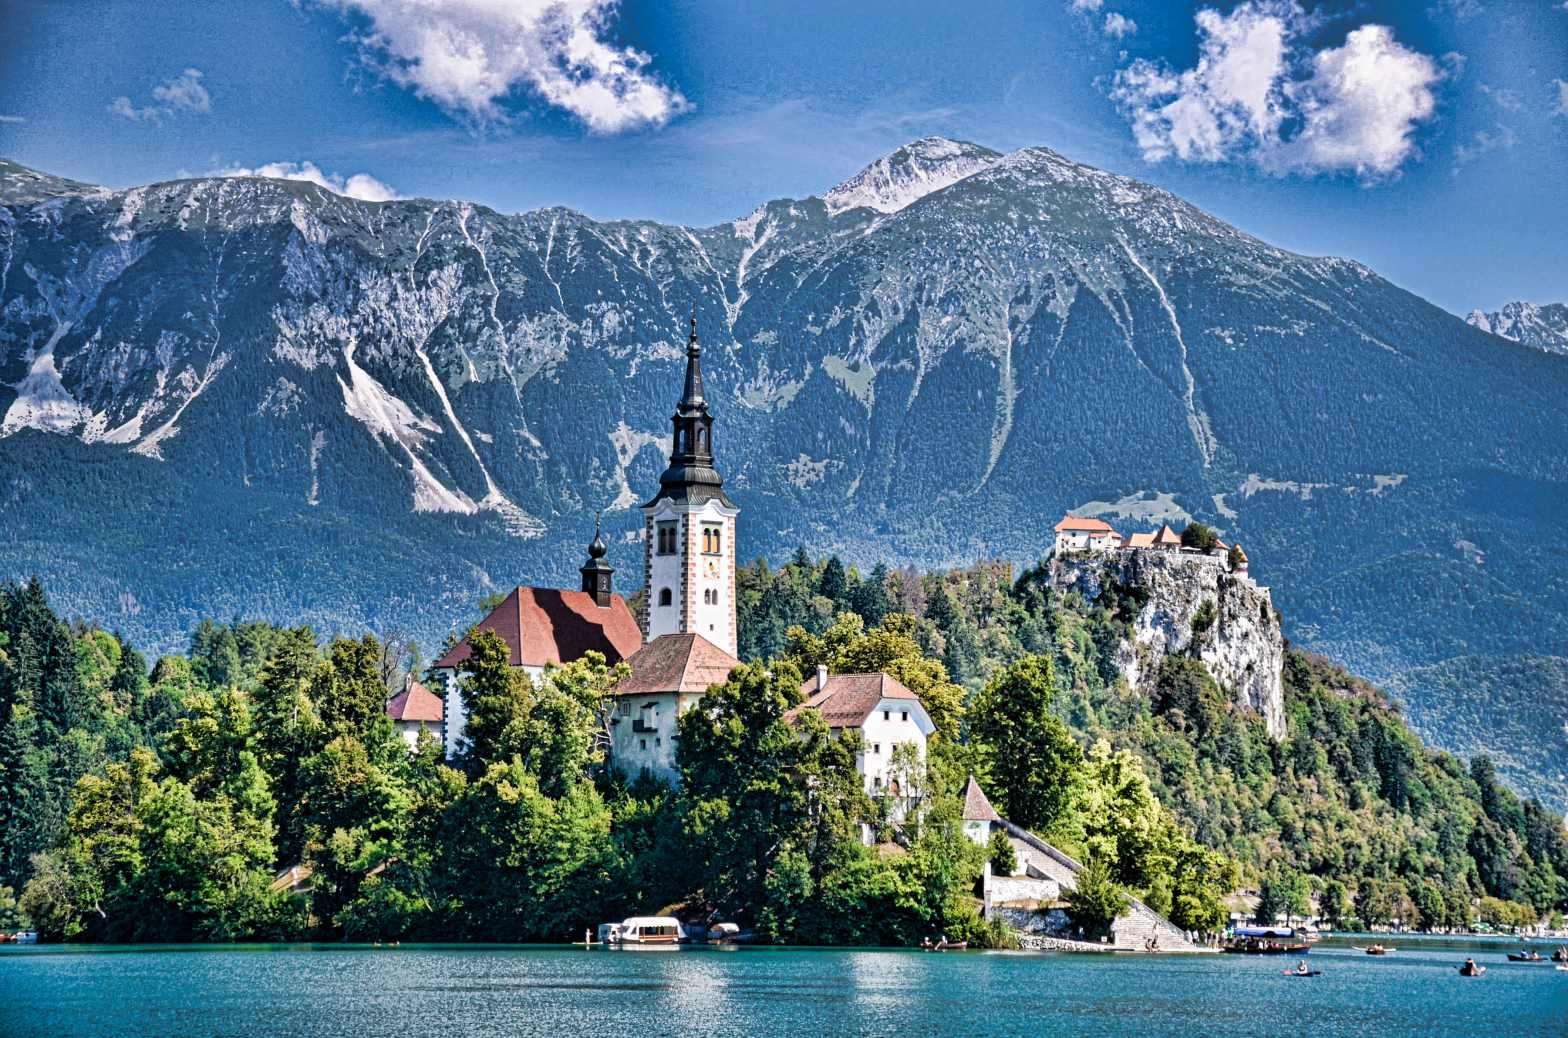 This highlights the beauty of Lake Bled